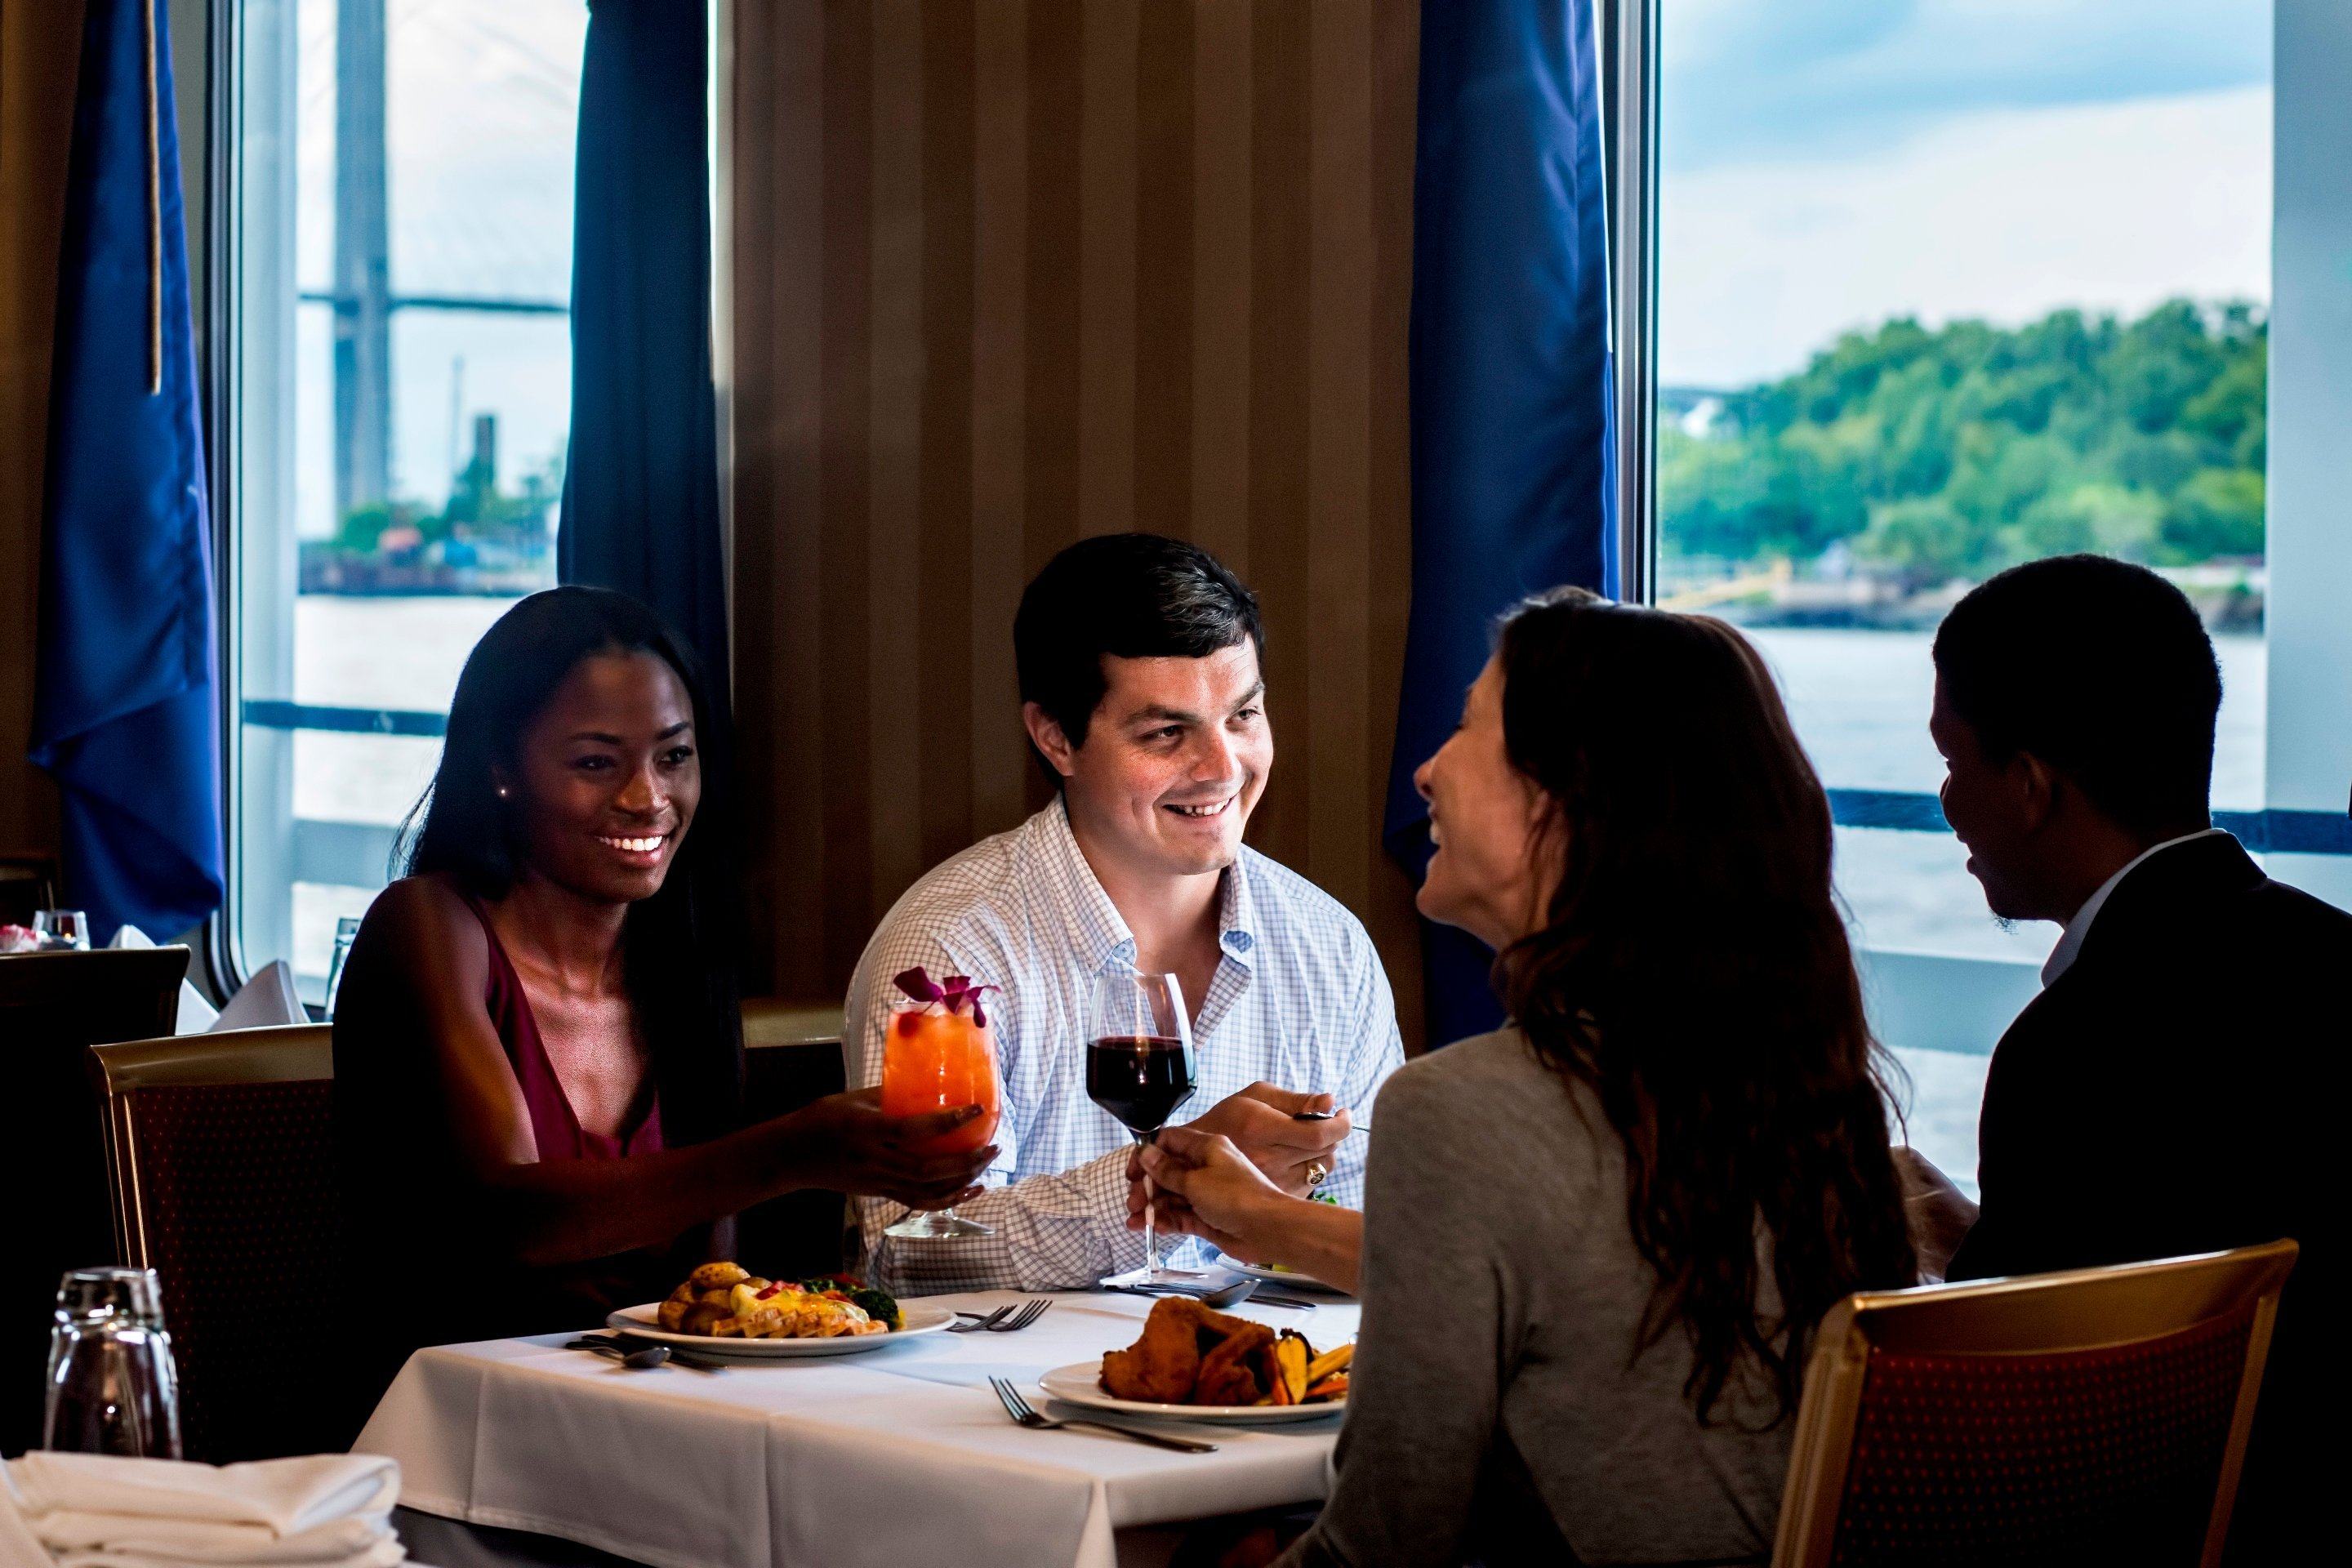 Dine with friends and family as you cruise the historic Savannah River!